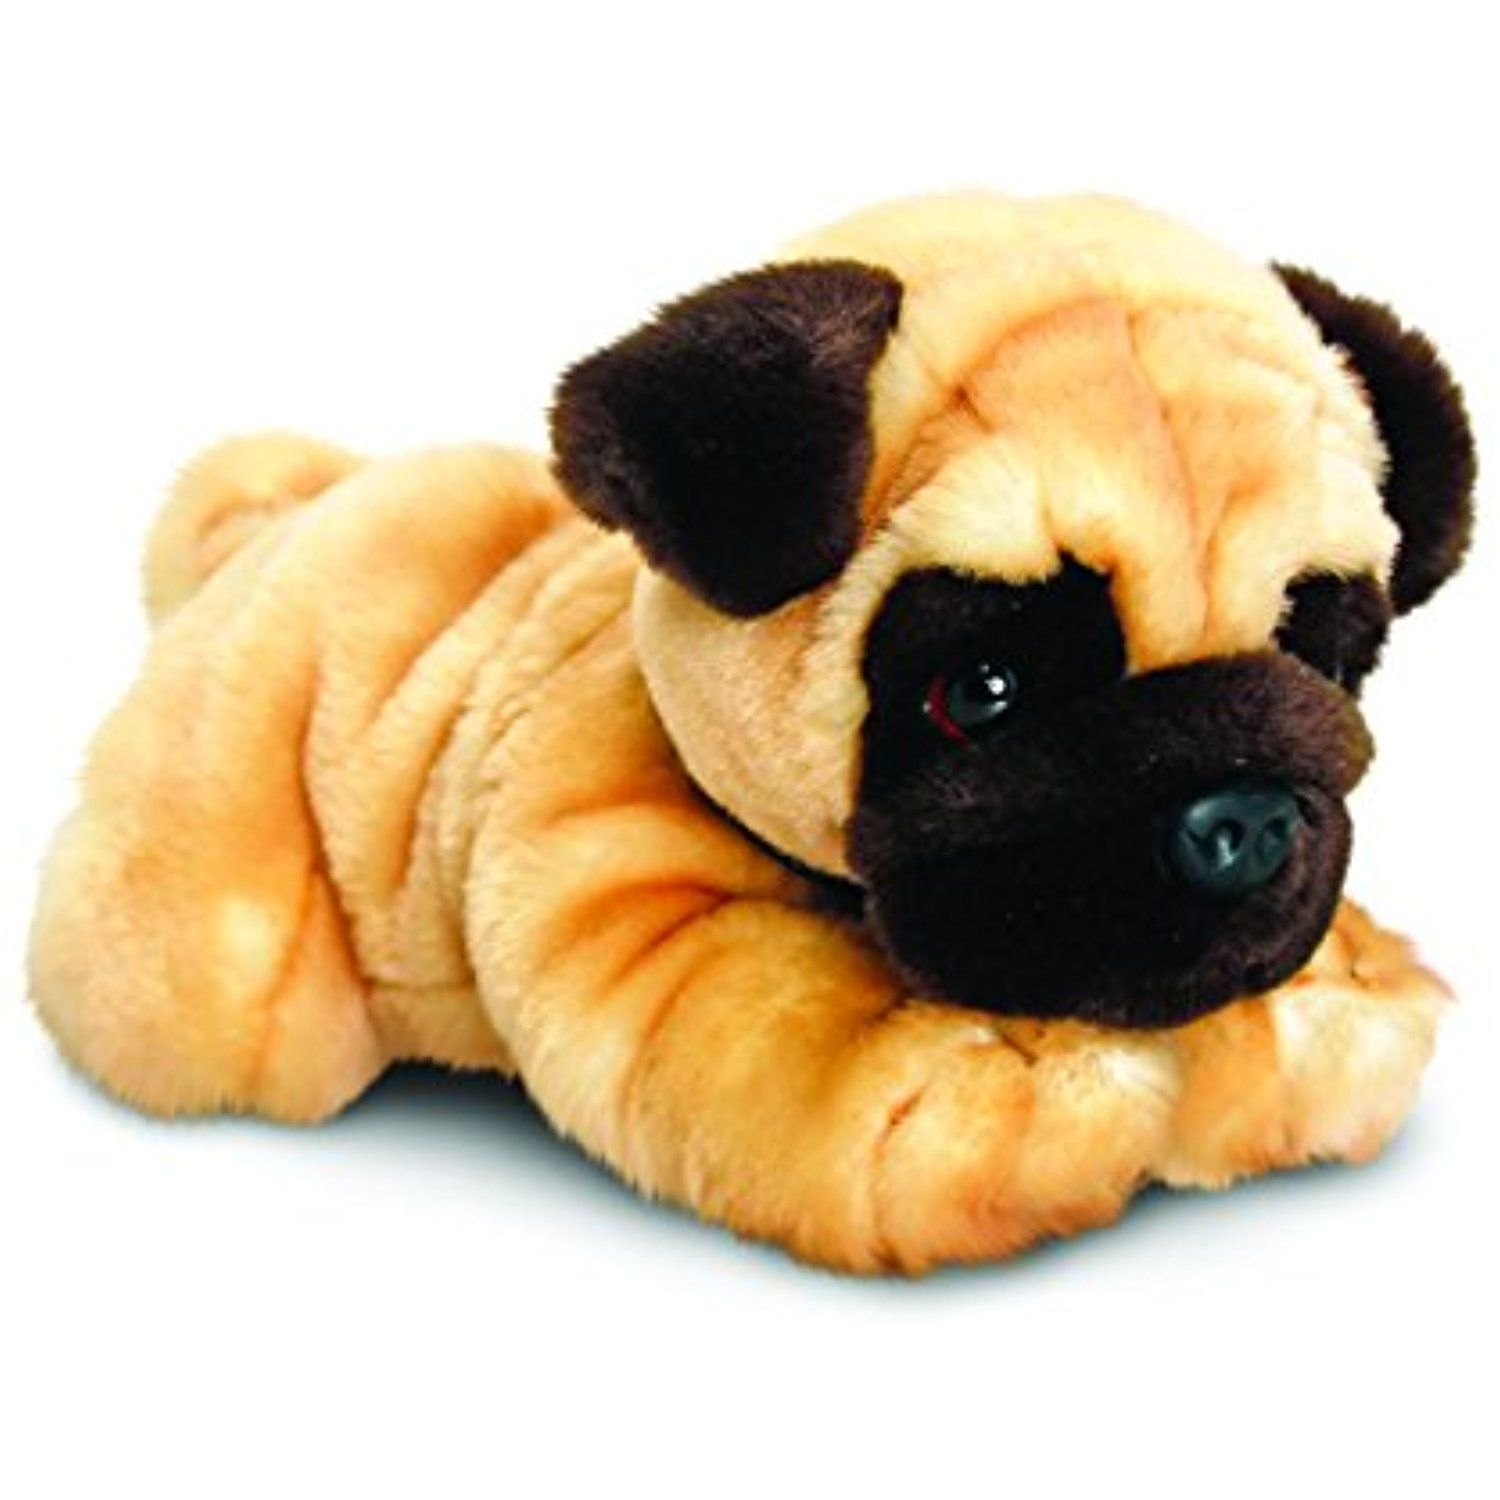 35cm Pug Soft Plush Toy Dog Learn More By Visiting The Image